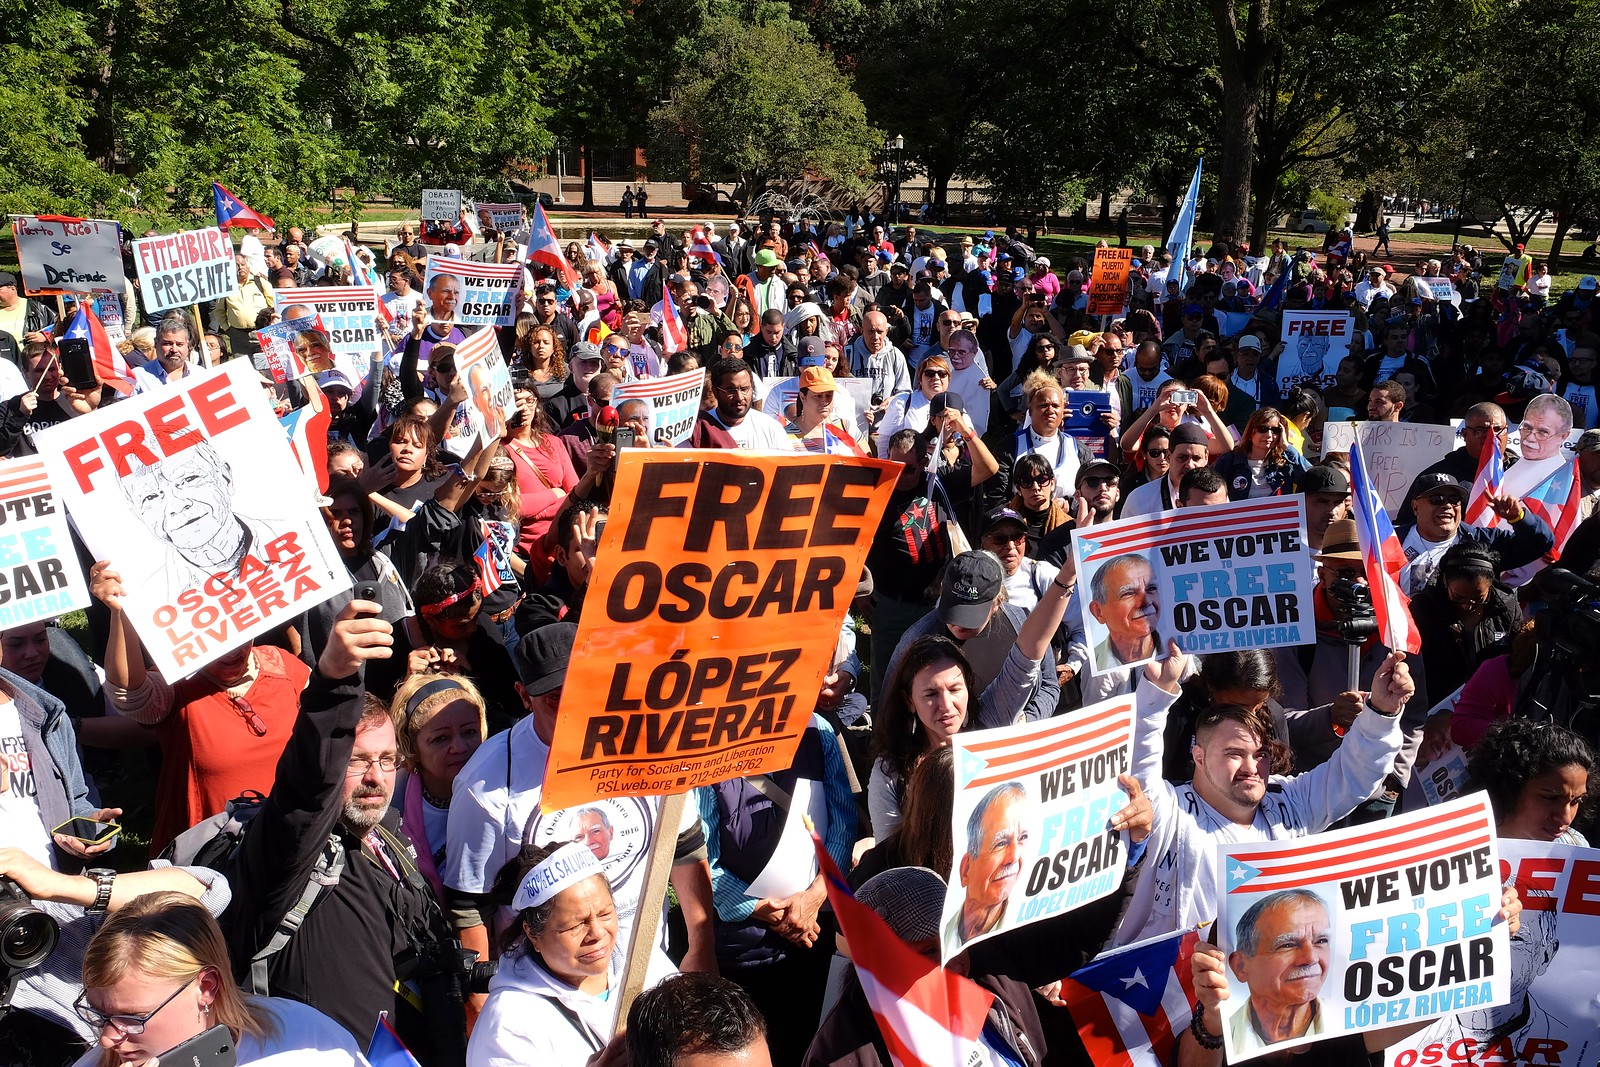 A large crowd gathers to show support for the freedom of Oscar Lopez, holding placards and Puerto Rican flags.